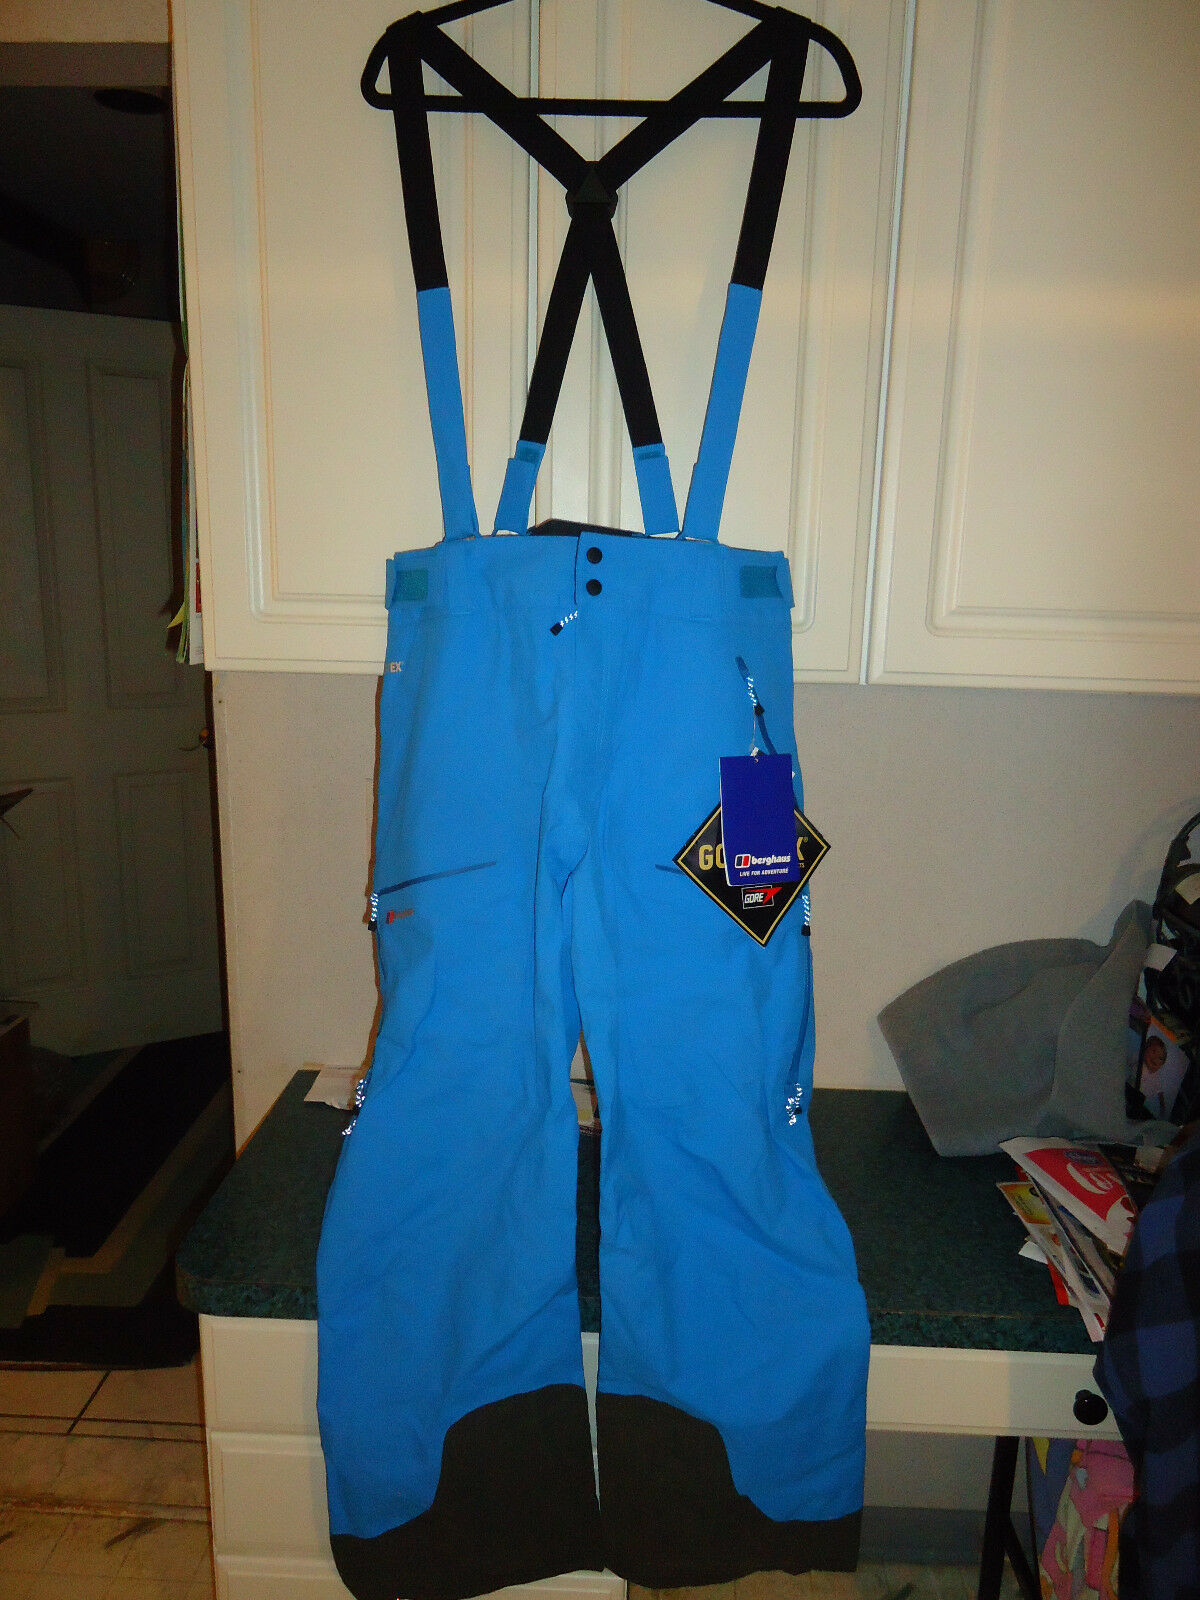 BERGHAUS THE FRENDO  GORE-TEX SHELL PANTS WOMEN'S LARGE (L) blueE - SRP  330  limit buy